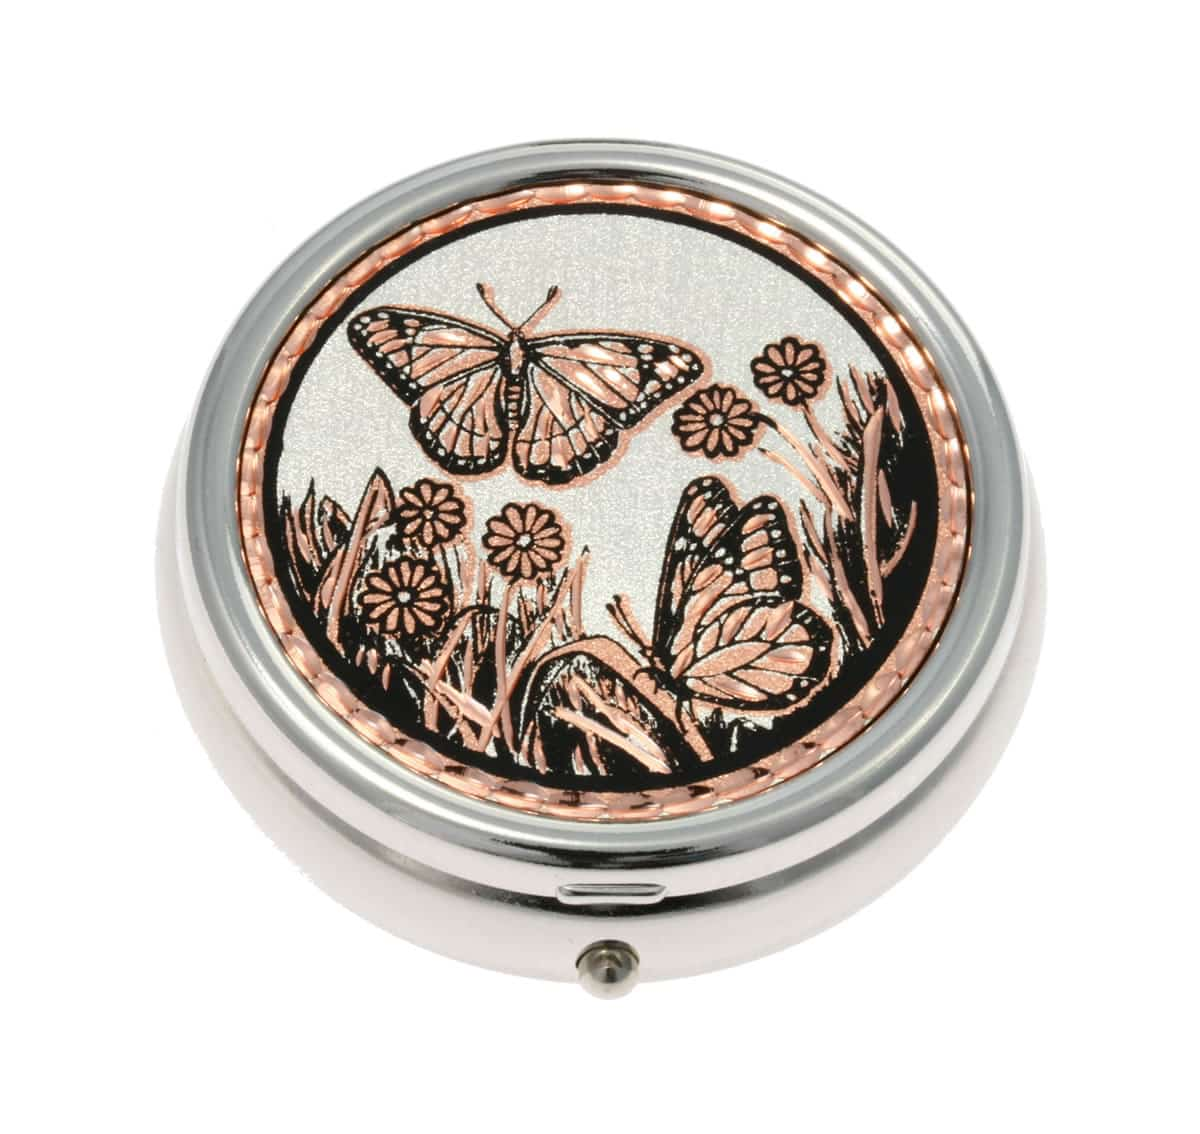 Elegant Butterfly Pill Boxes, Unique Handmade Gifts for Women